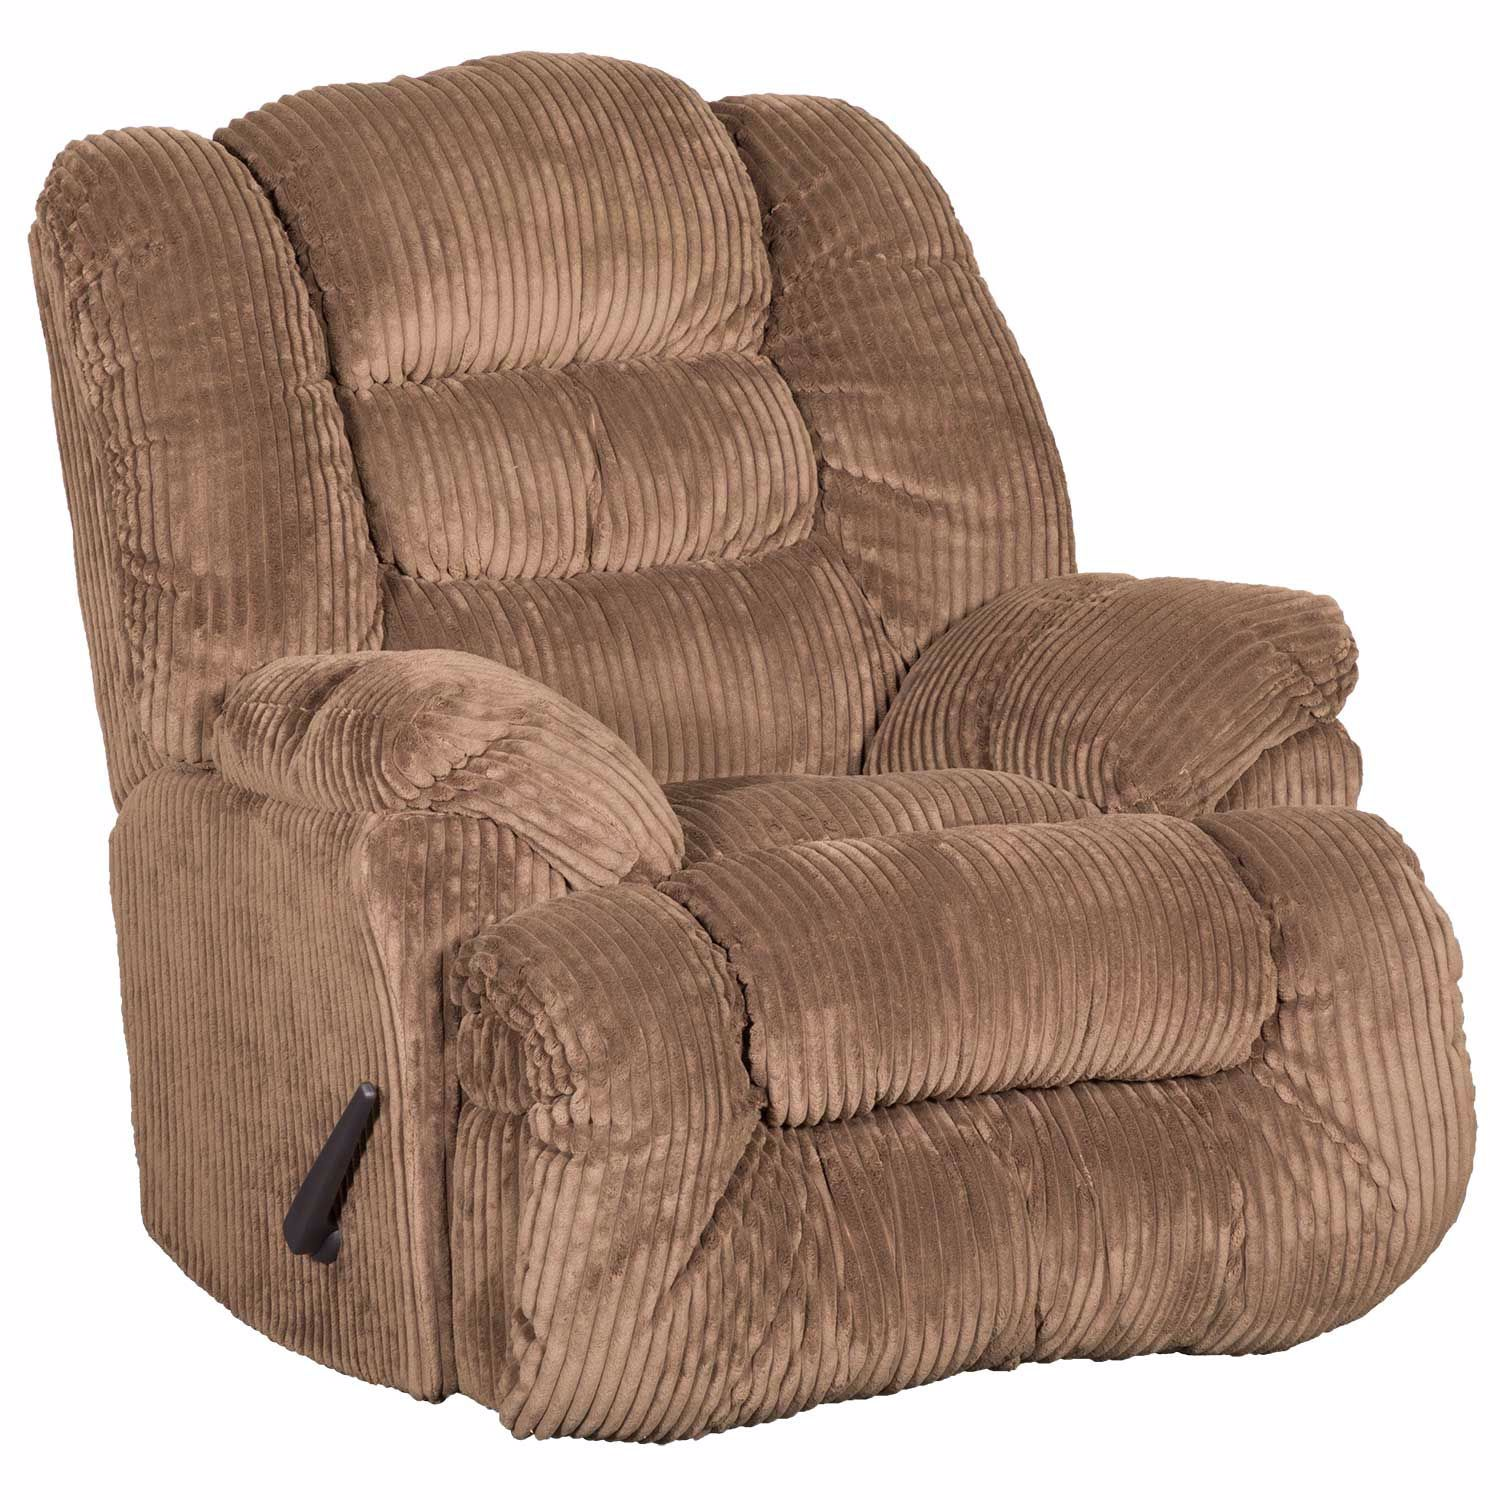 Outstanding Spencer Mocha Rocker Recliner 7517 1729 16 Franklin Gmtry Best Dining Table And Chair Ideas Images Gmtryco